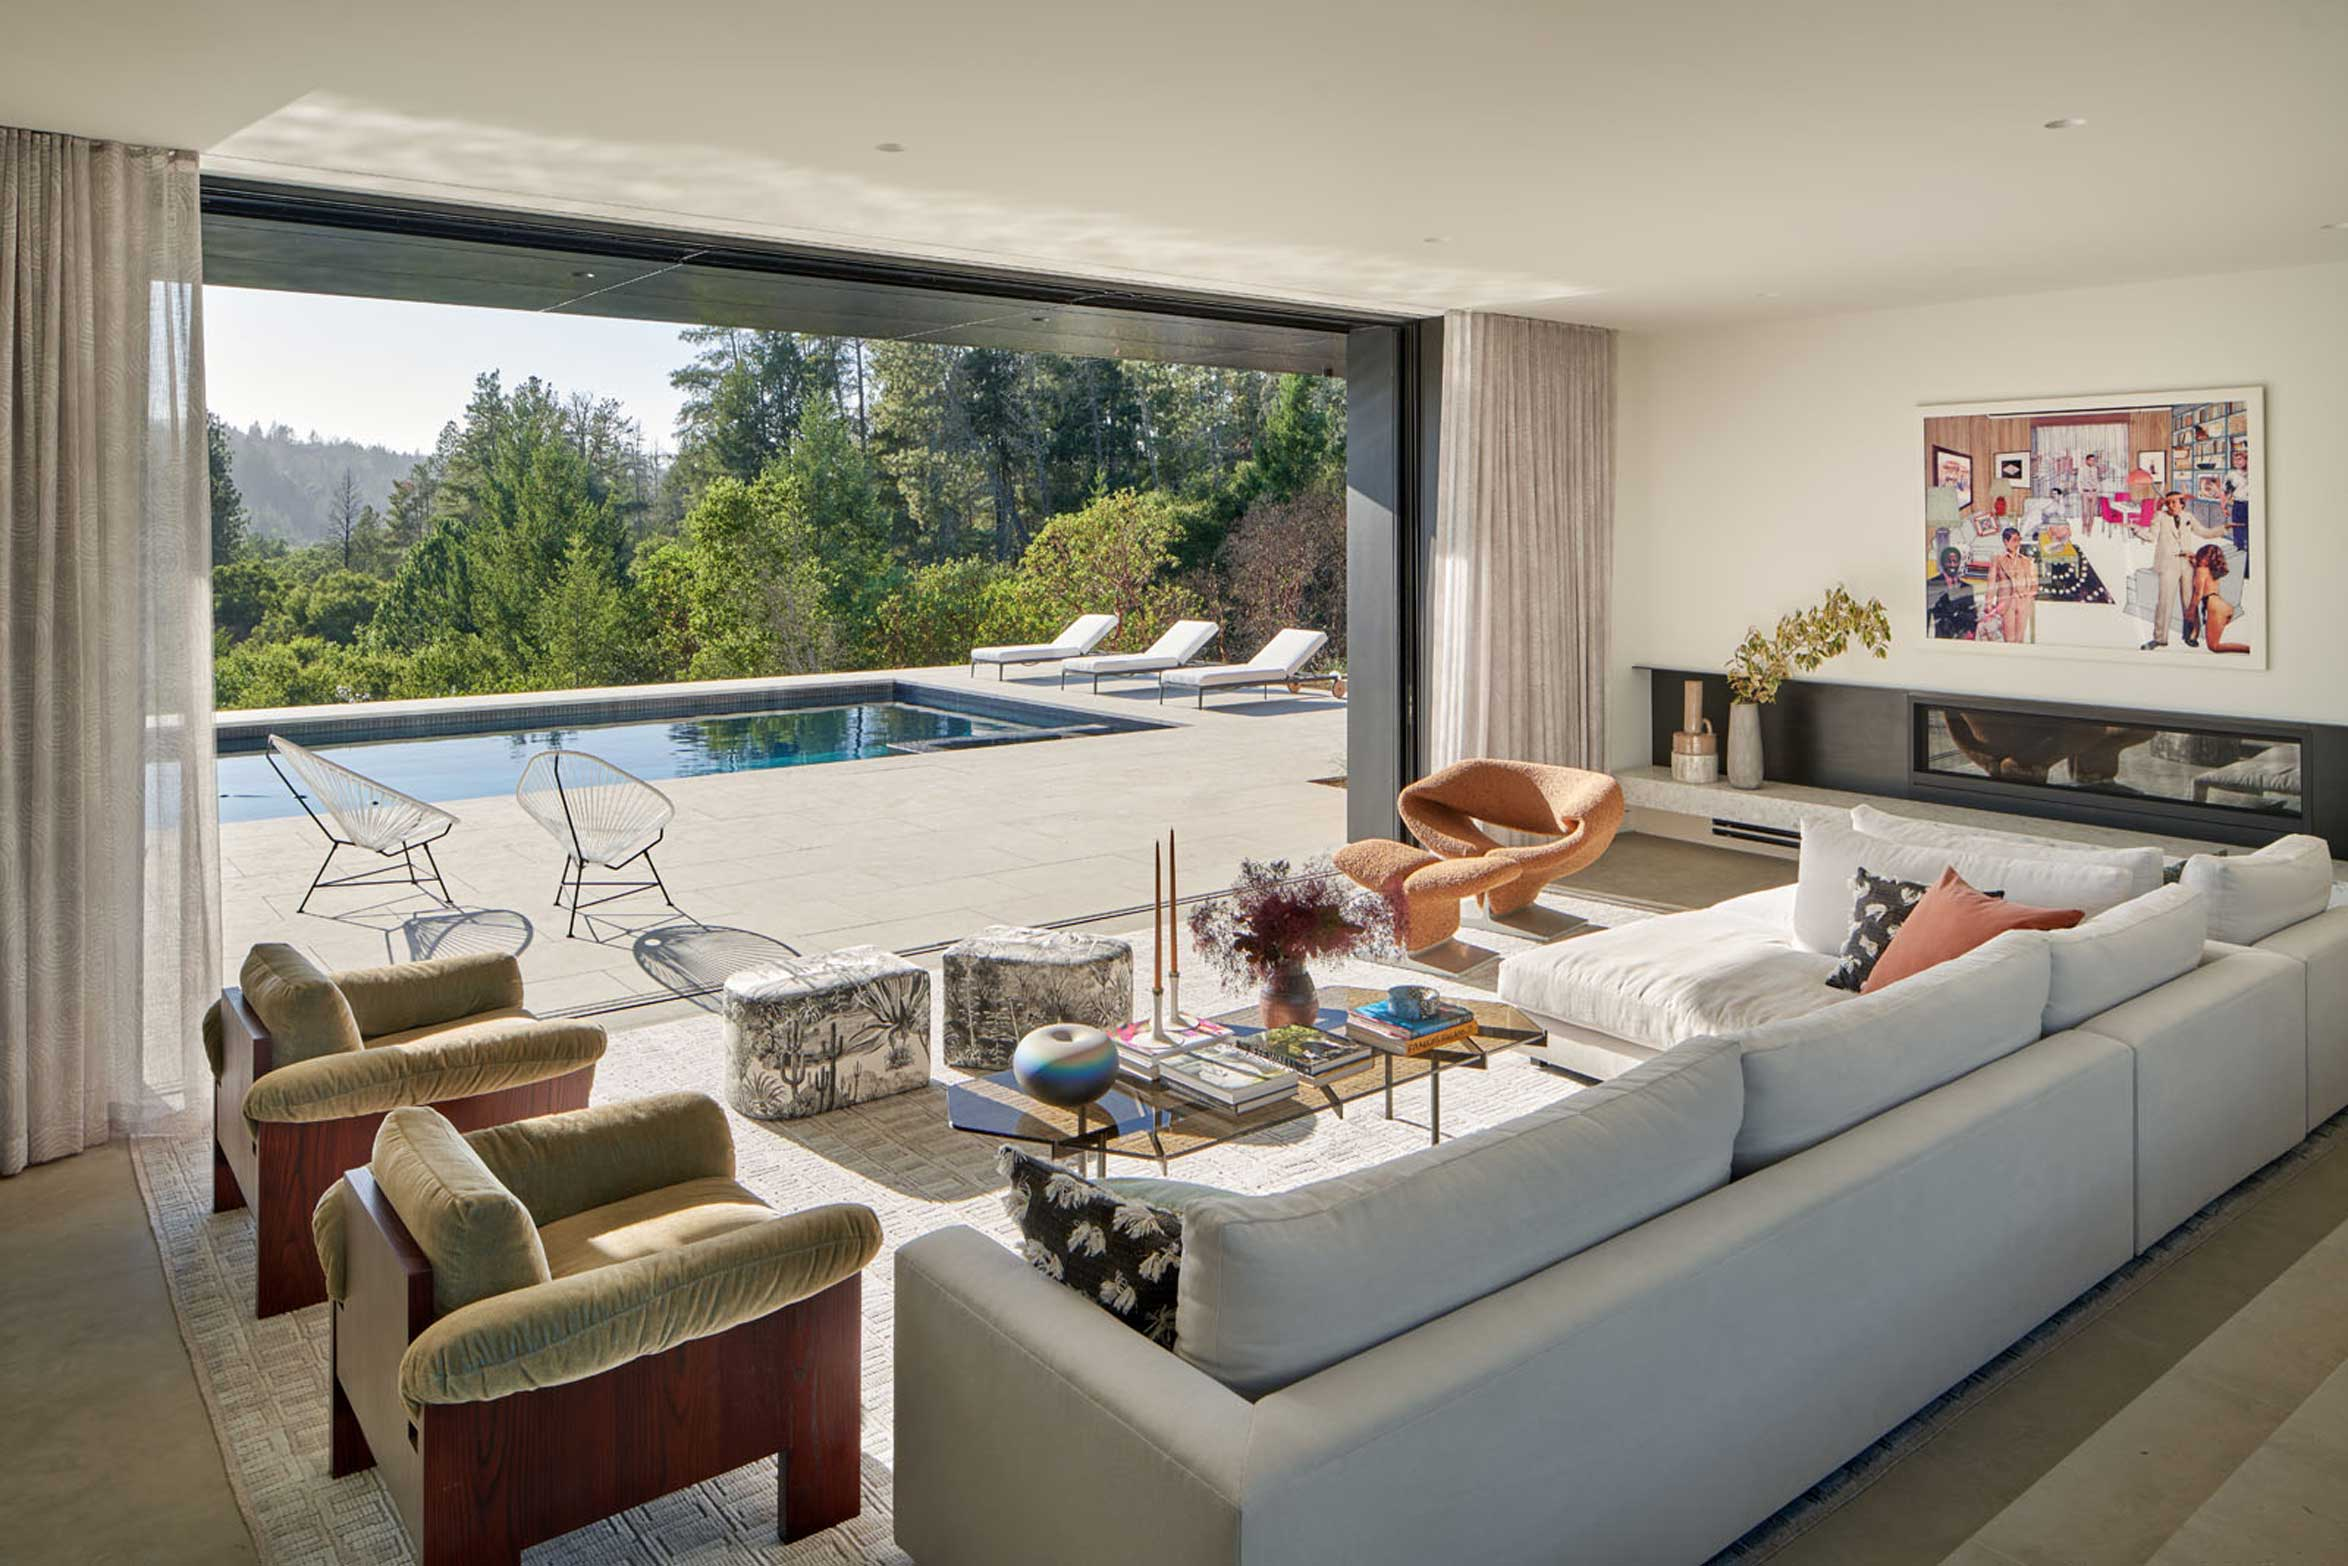 Elevated Mood - living room with pool view